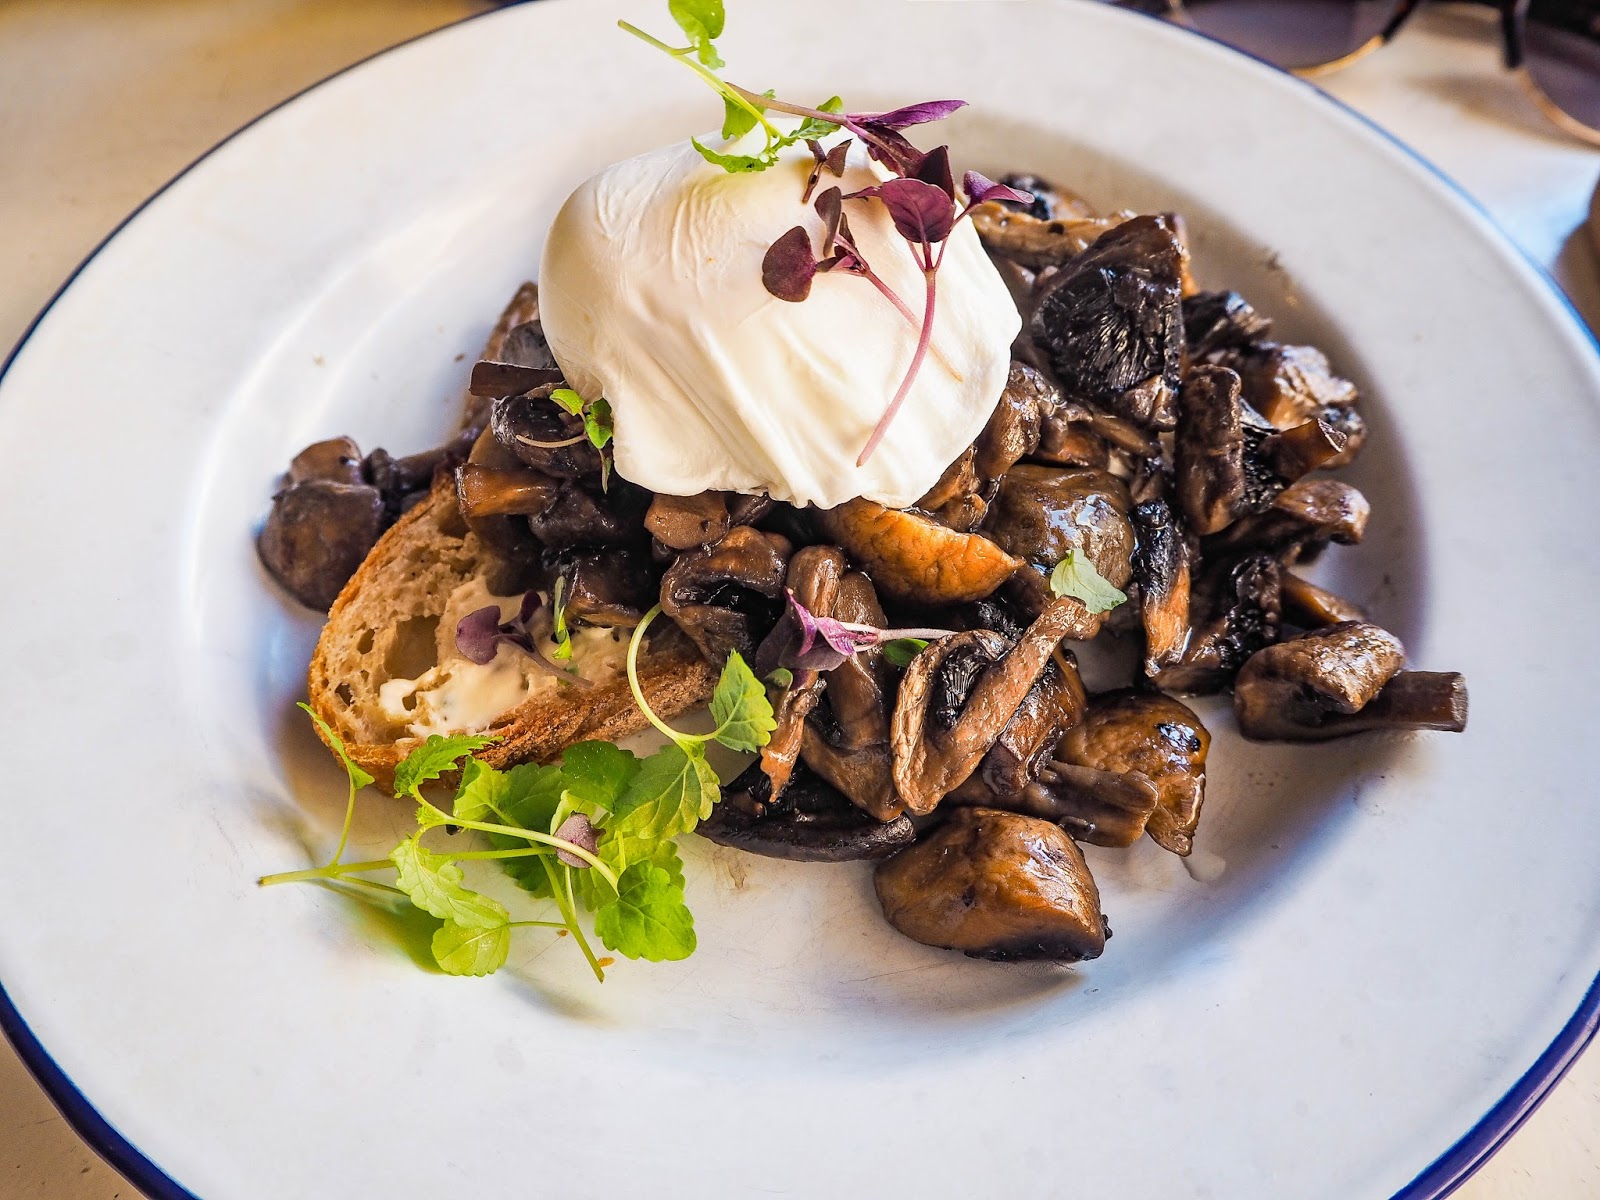 Mushrooms and poached egg on toast